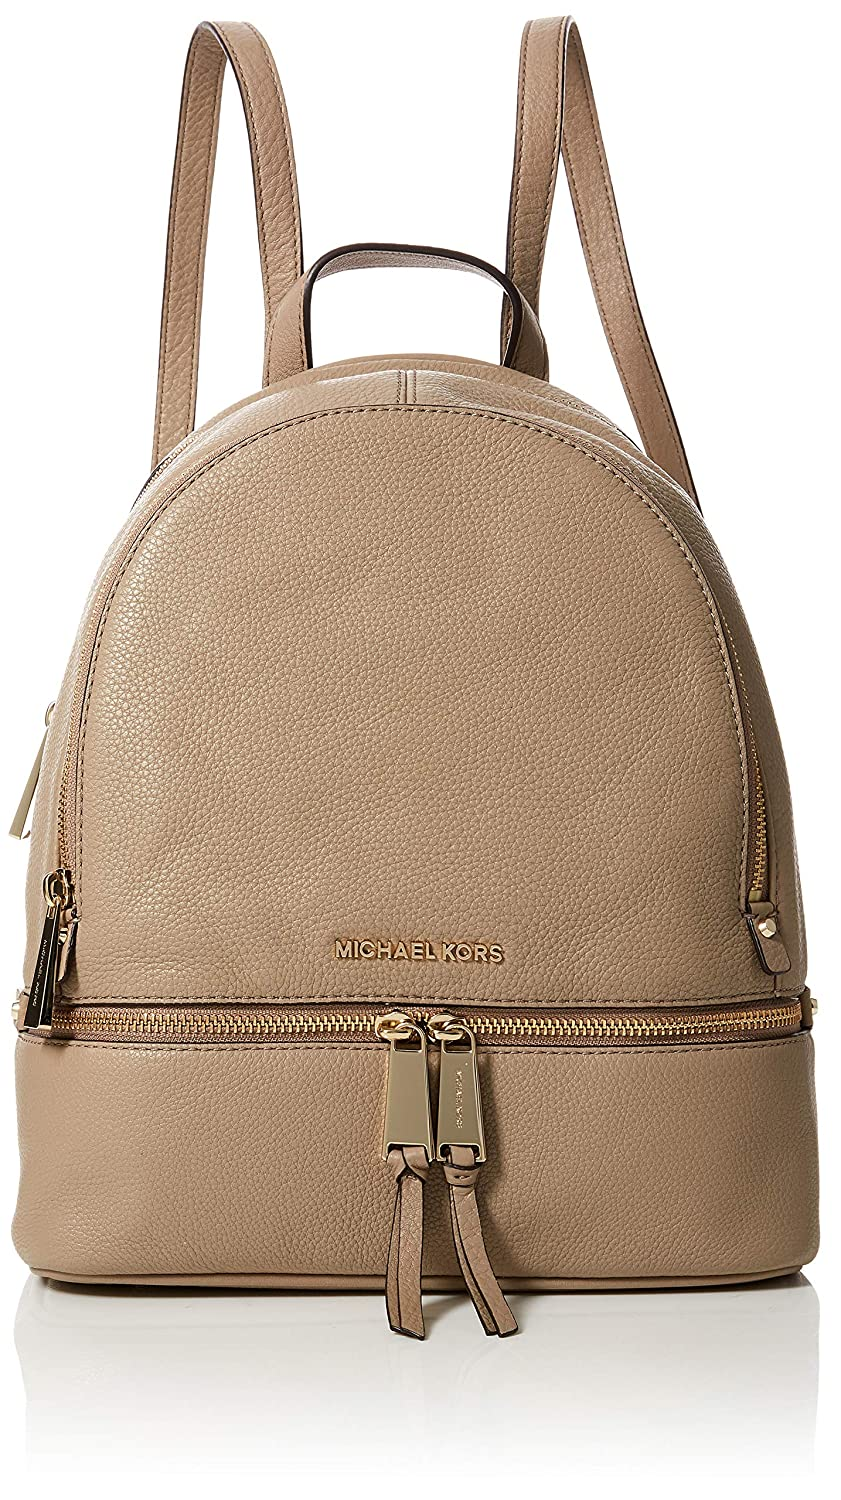 6cd823772a2904 Amazon.com: Michael Kors Womens Rhea Zip Backpack Handbag Beige (TRUFFLE):  Shoes